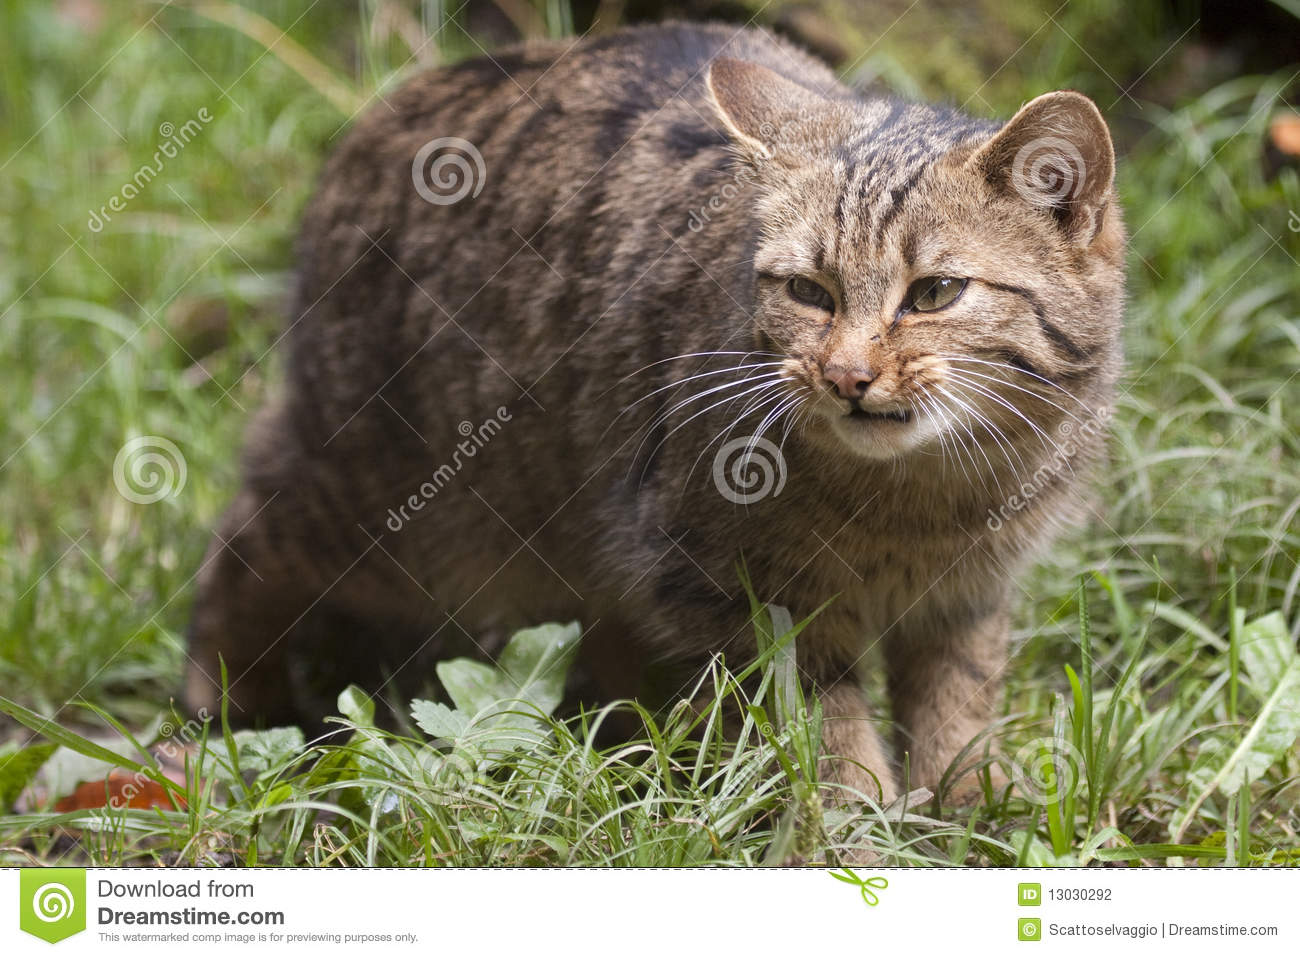 The Wildcat (Felis silvestris), sometimes Wild Cat or Wild-cat, is a small cat (Felinae) native to Europe, the western part of Asia, and Africa. It is a hunter of small mammals, birds, and other creatures of a similar size. There are several subspecies distributed in different regions. Sometimes included is the ubiquitous domestic cat (Felis silvestris catus), which has been introduced to every habitable continent and most of the world's larger islands, and has become feral in many of those environments.